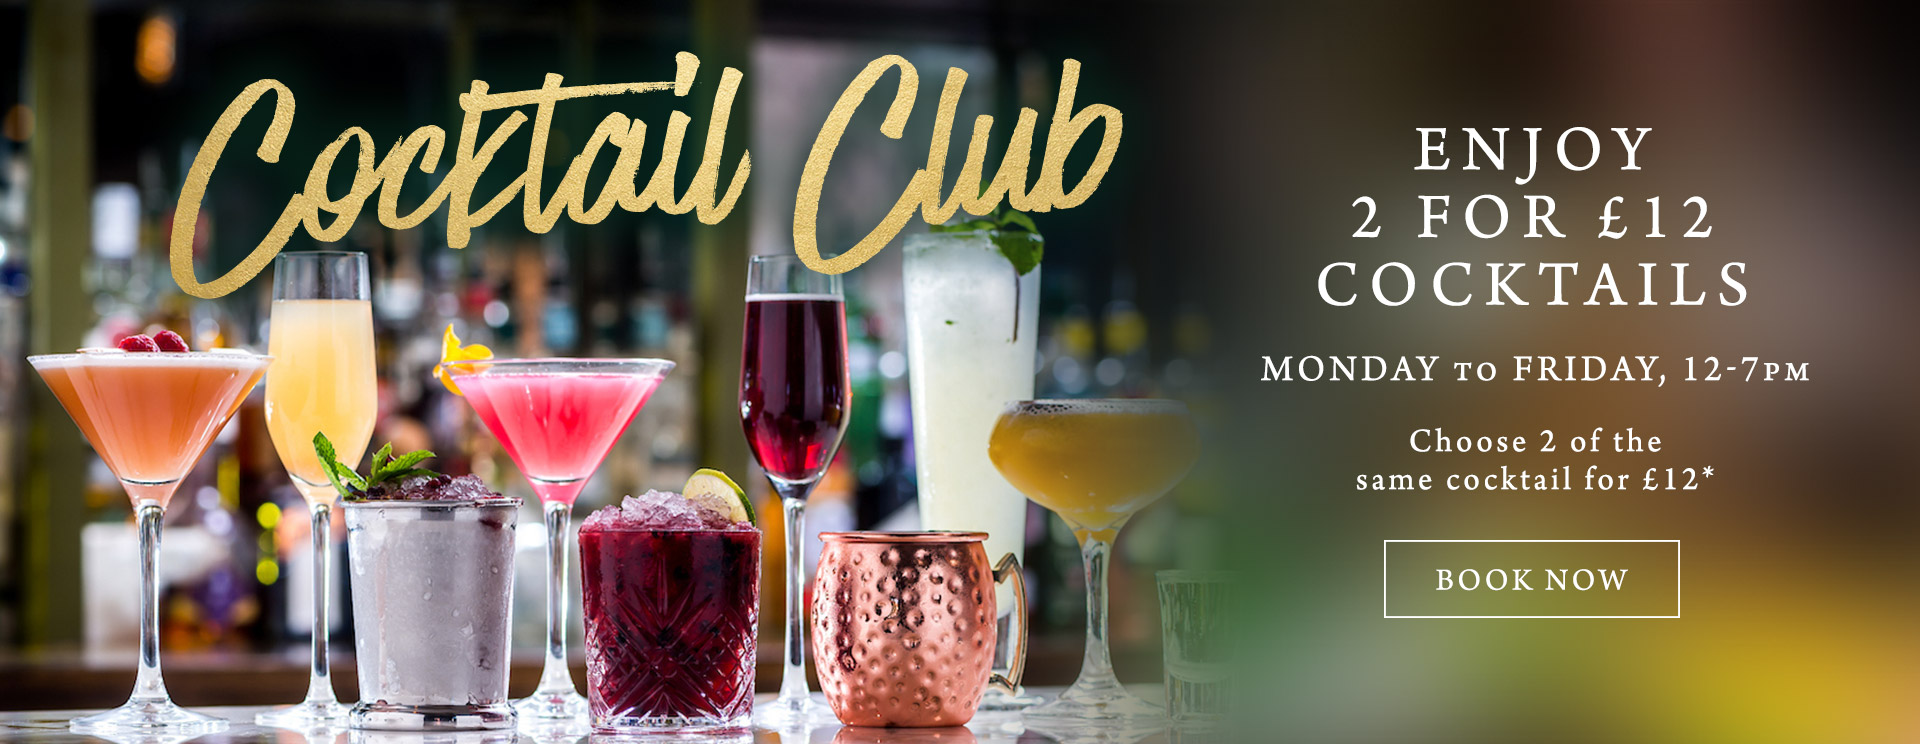 2 for £12 cocktails at The Flying Horse